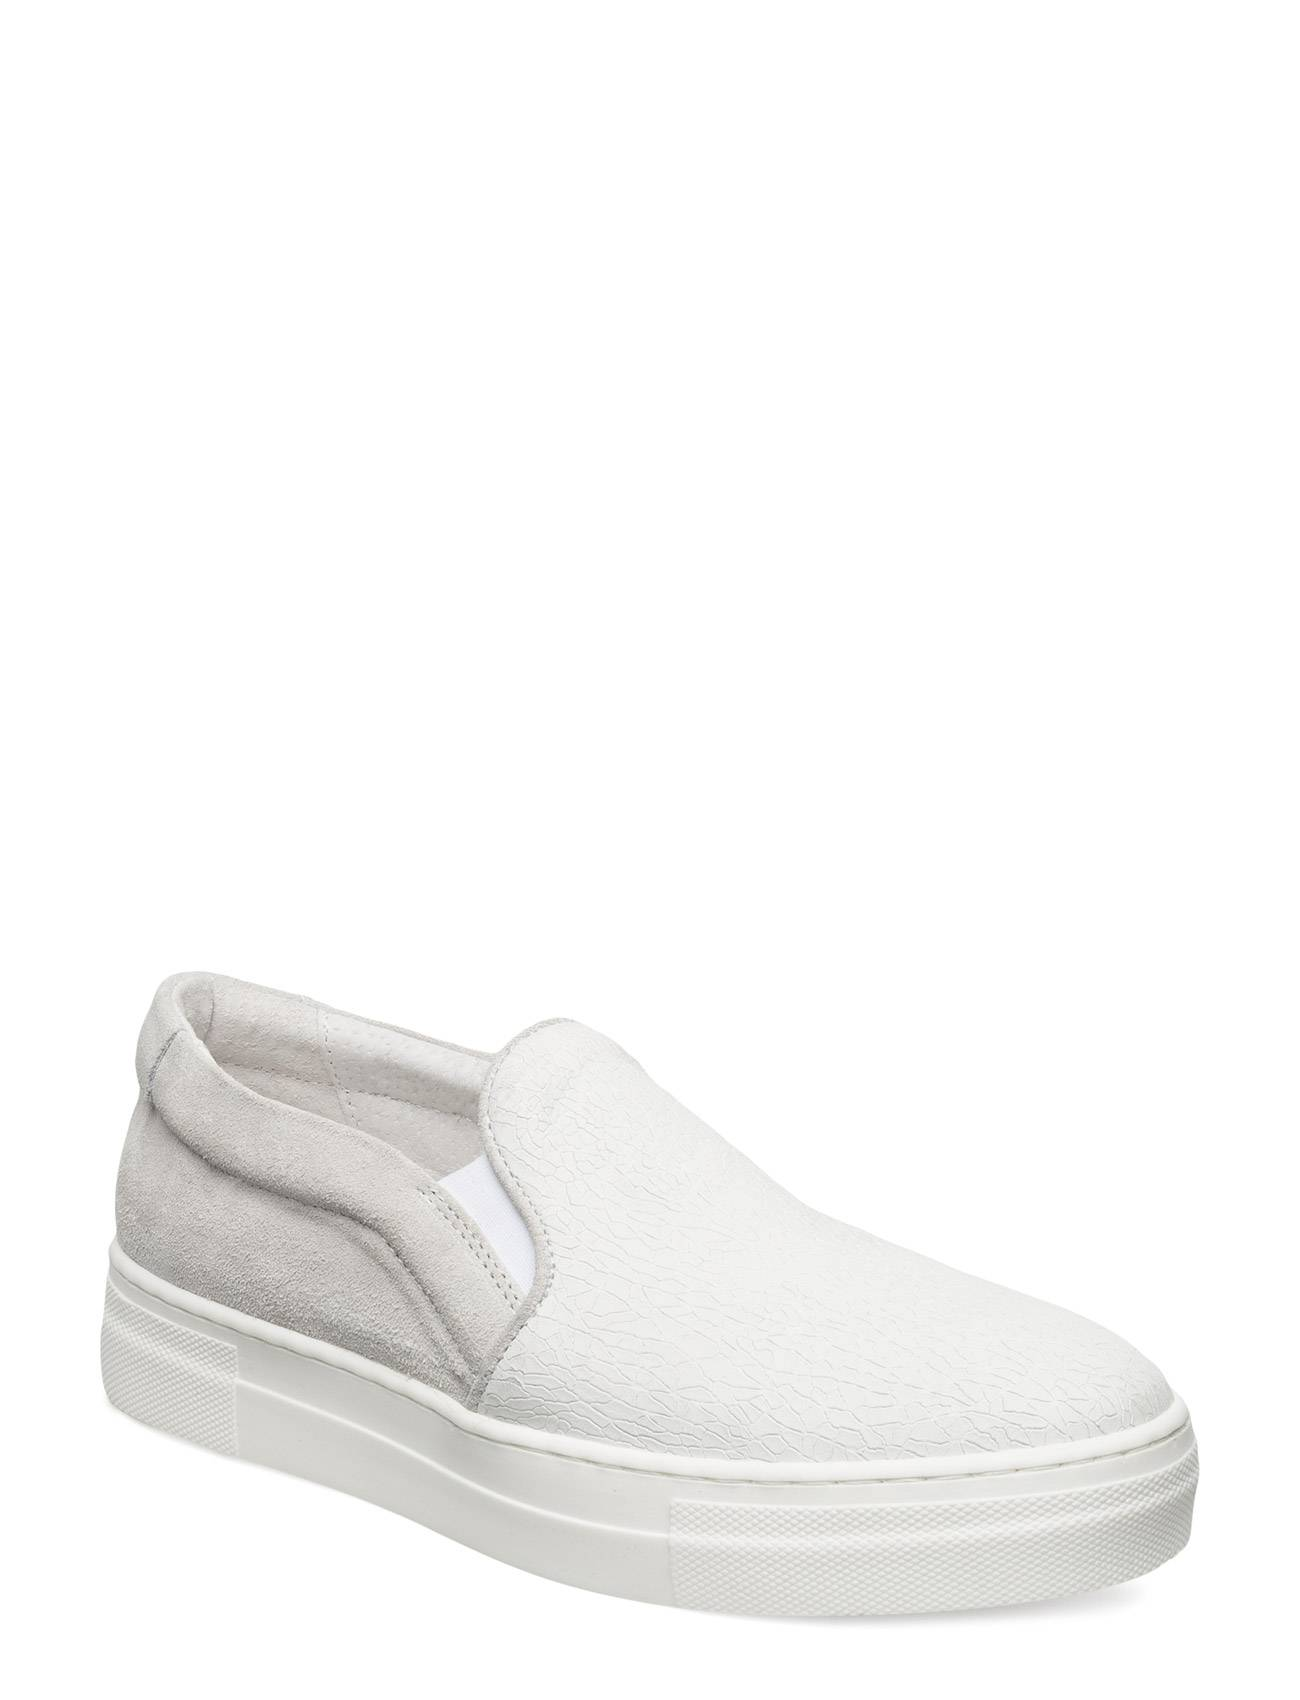 J. Lindeberg Pointy Slip-On Cracked Suede